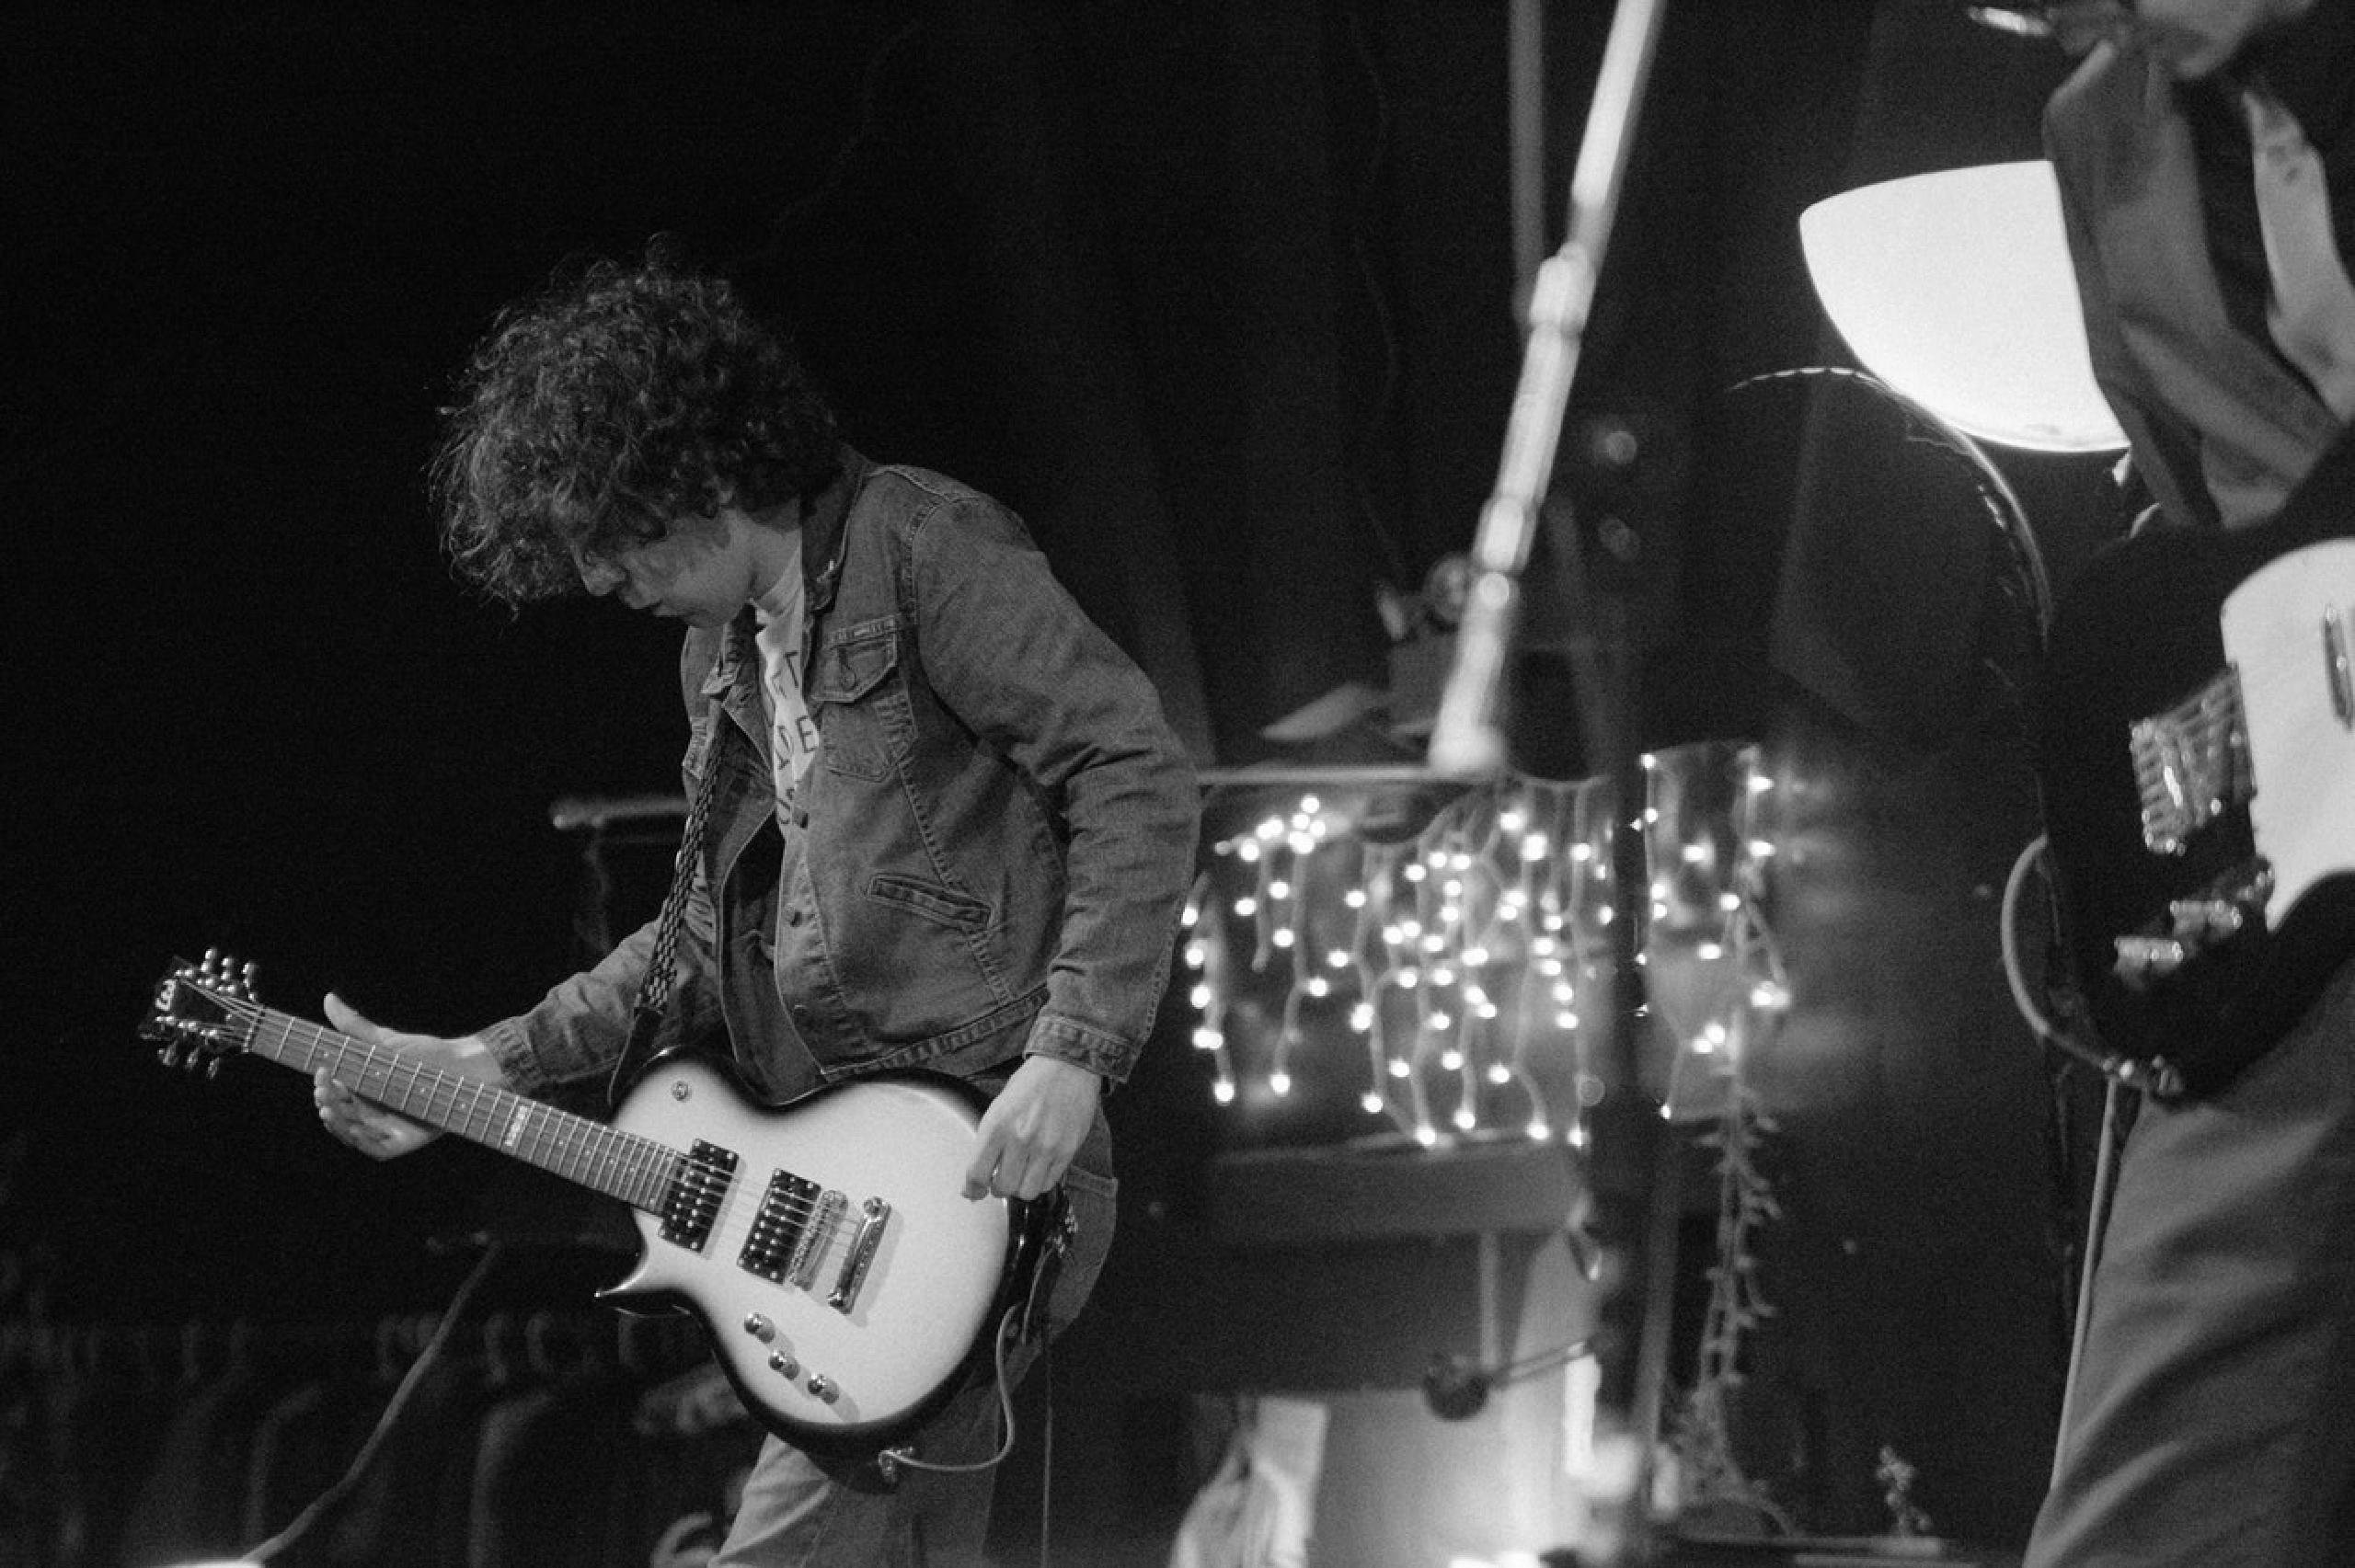 Car Seat Headrest Tour Dates 2017 2018 Tickets And Concerts